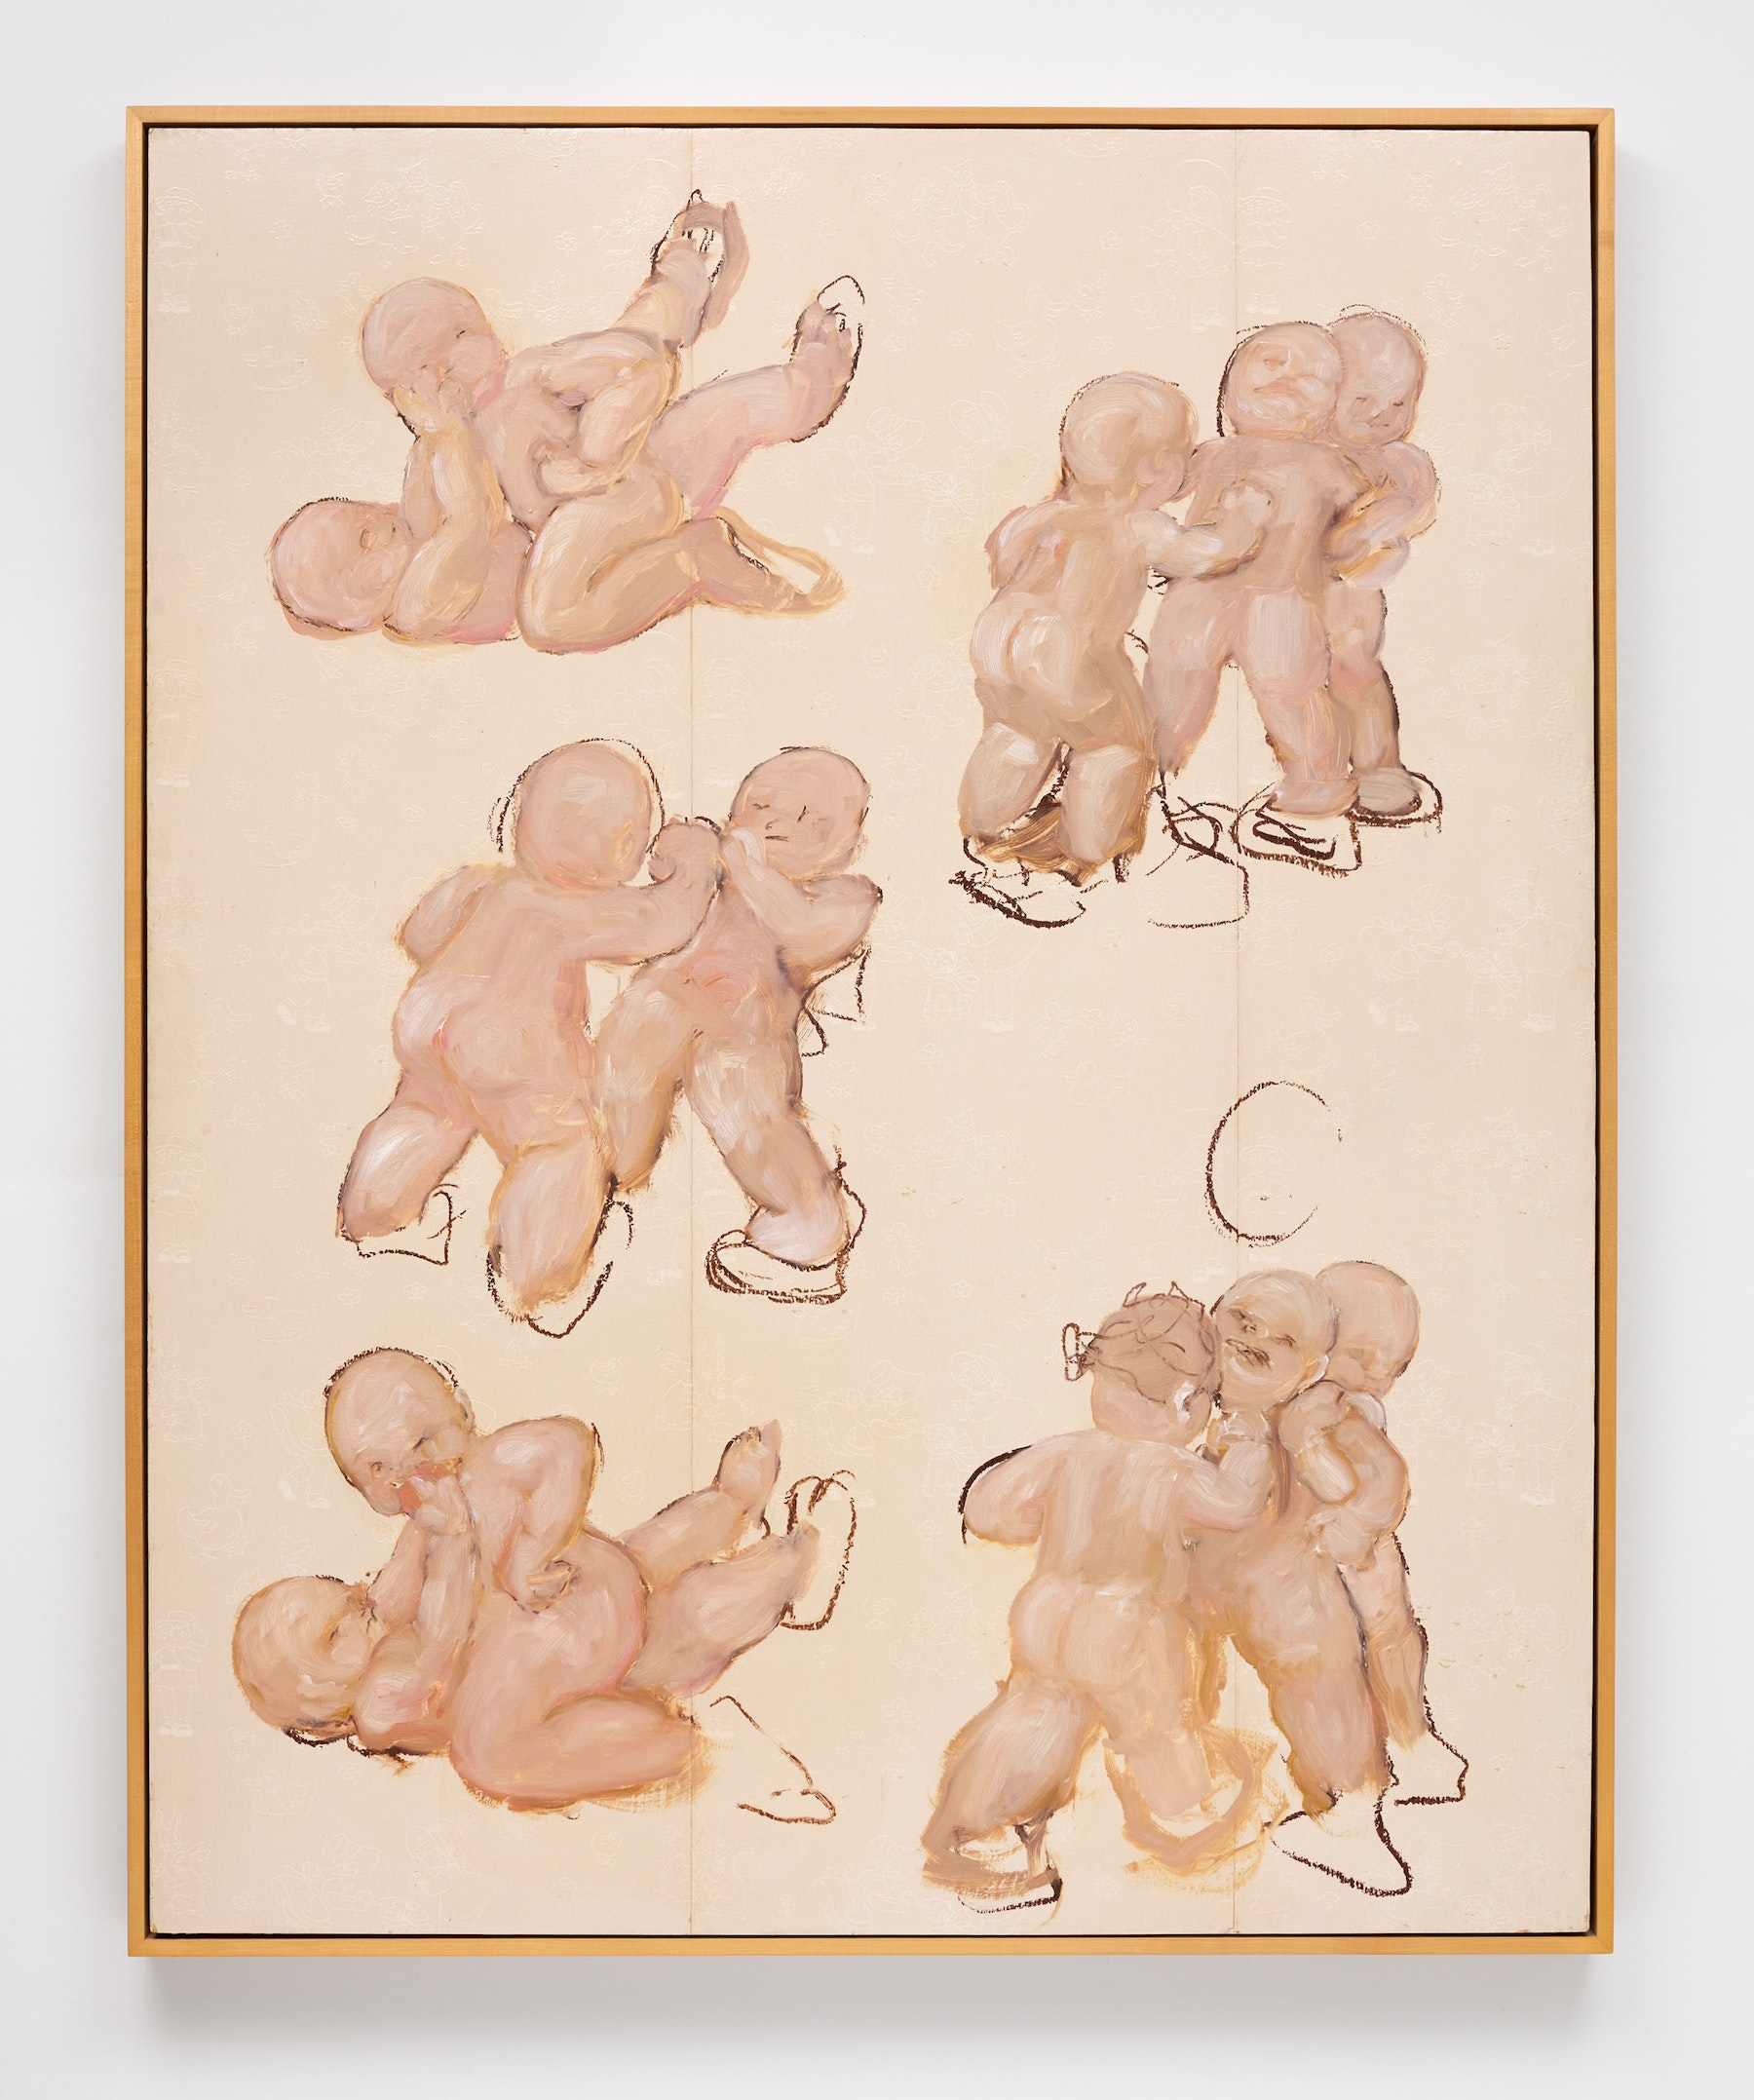 """Kim Dingle """"The Priss Papers (Pink Babies),"""" 1995 Oil on wallpaper on mahogany panel 61 ¹⁄₂"""" x 49 ¹⁄₂"""" x 2 ¹⁄₂"""" [HxWxD] (156.21 x 125.73 x 6.35 cm) Inventory #DIN329 Courtesy of Vielmetter Los Angeles Photo credit: Brica Wilcox"""